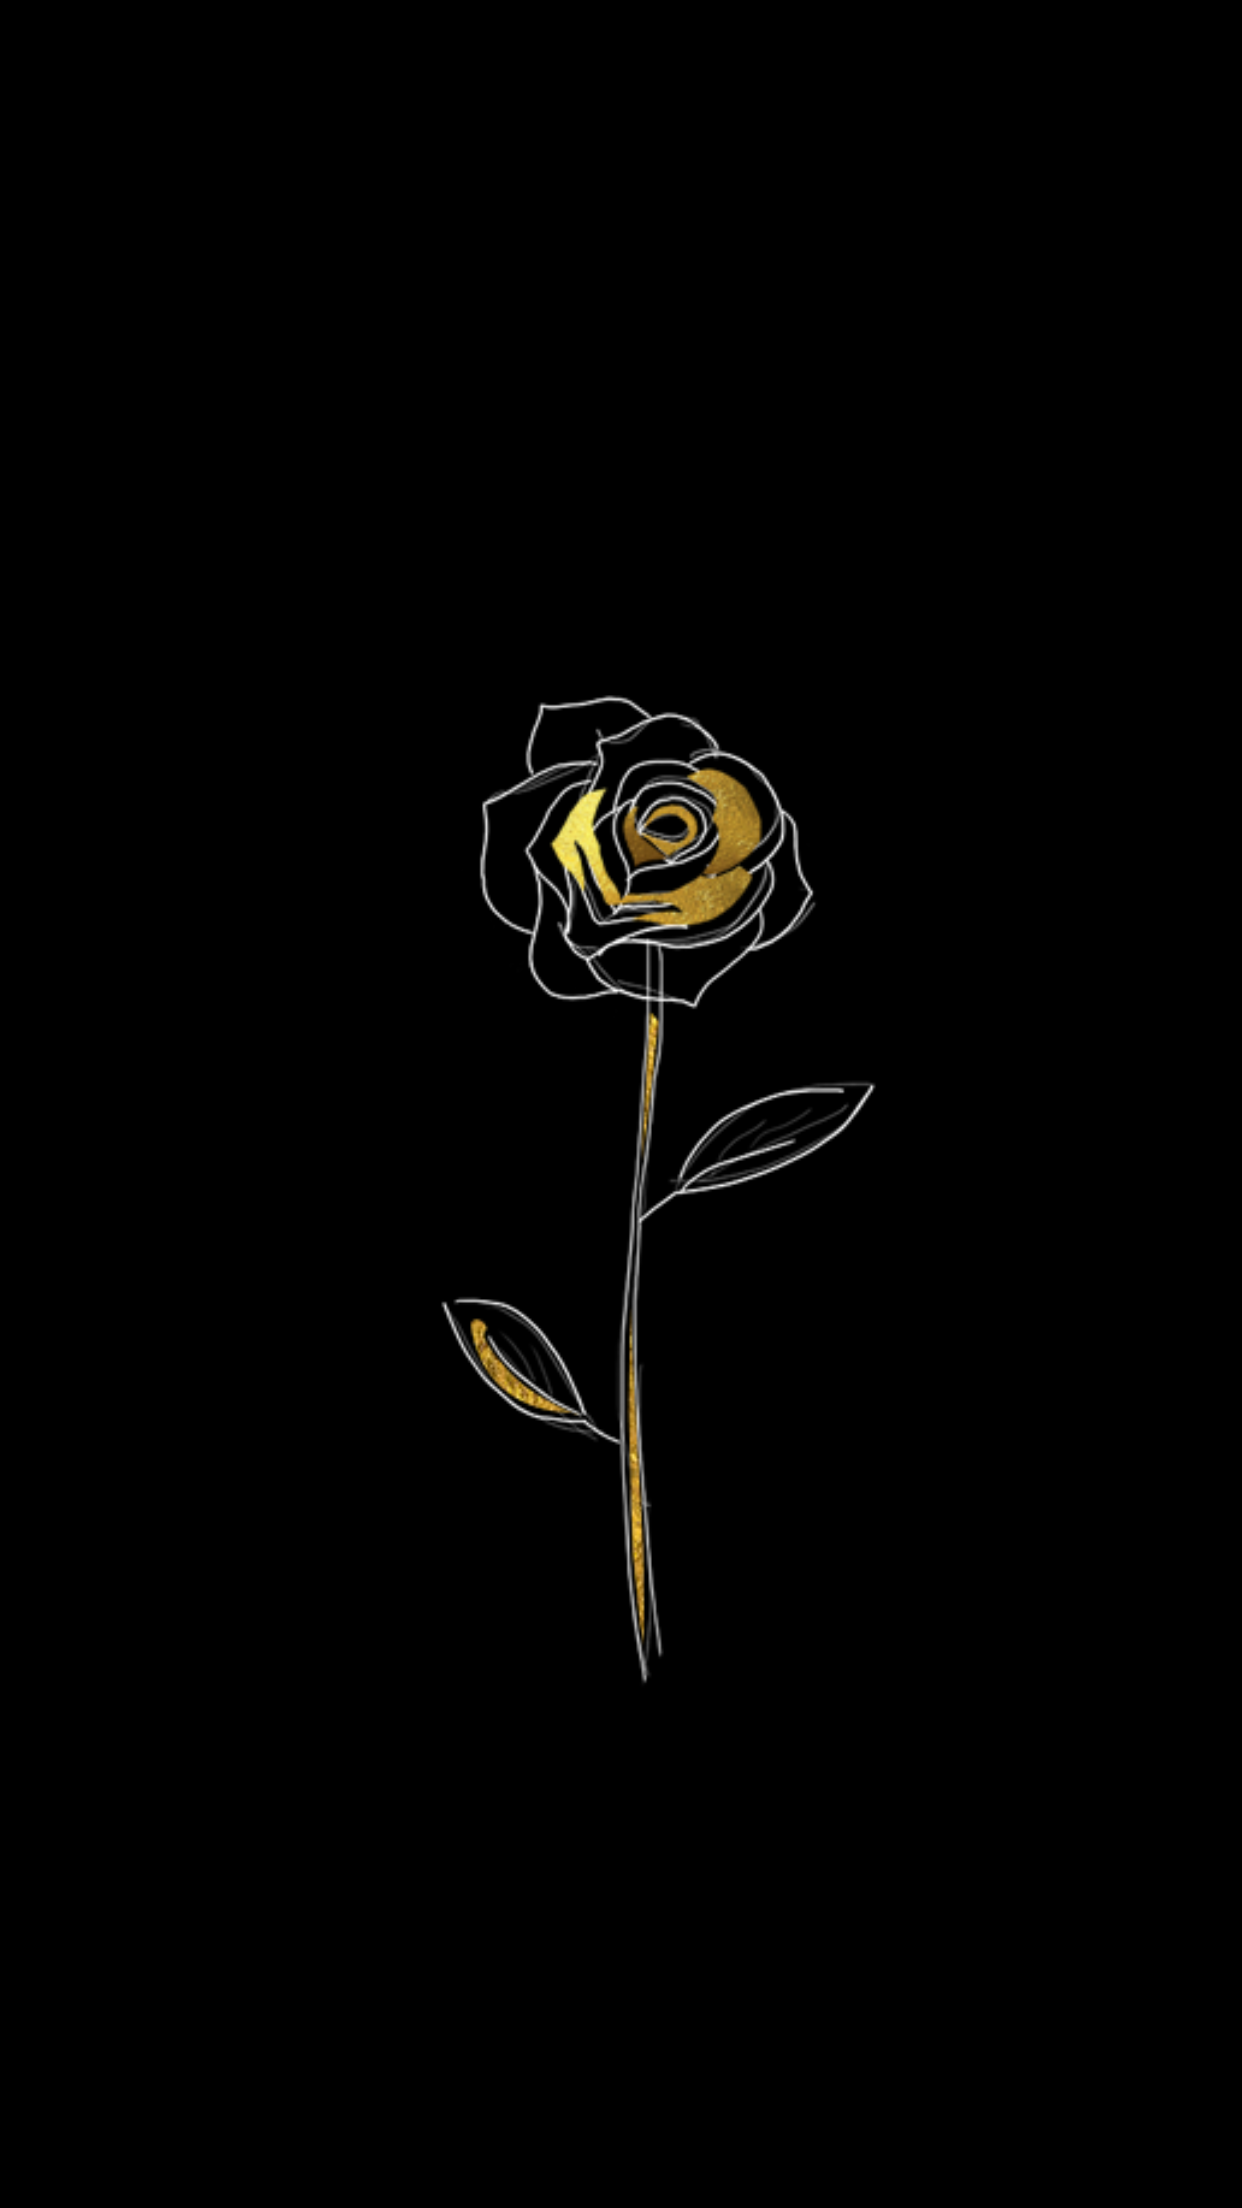 Pin By Adriano Gomes On Roses Gold Aesthetic Phone Screen Wallpaper Black Wallpaper